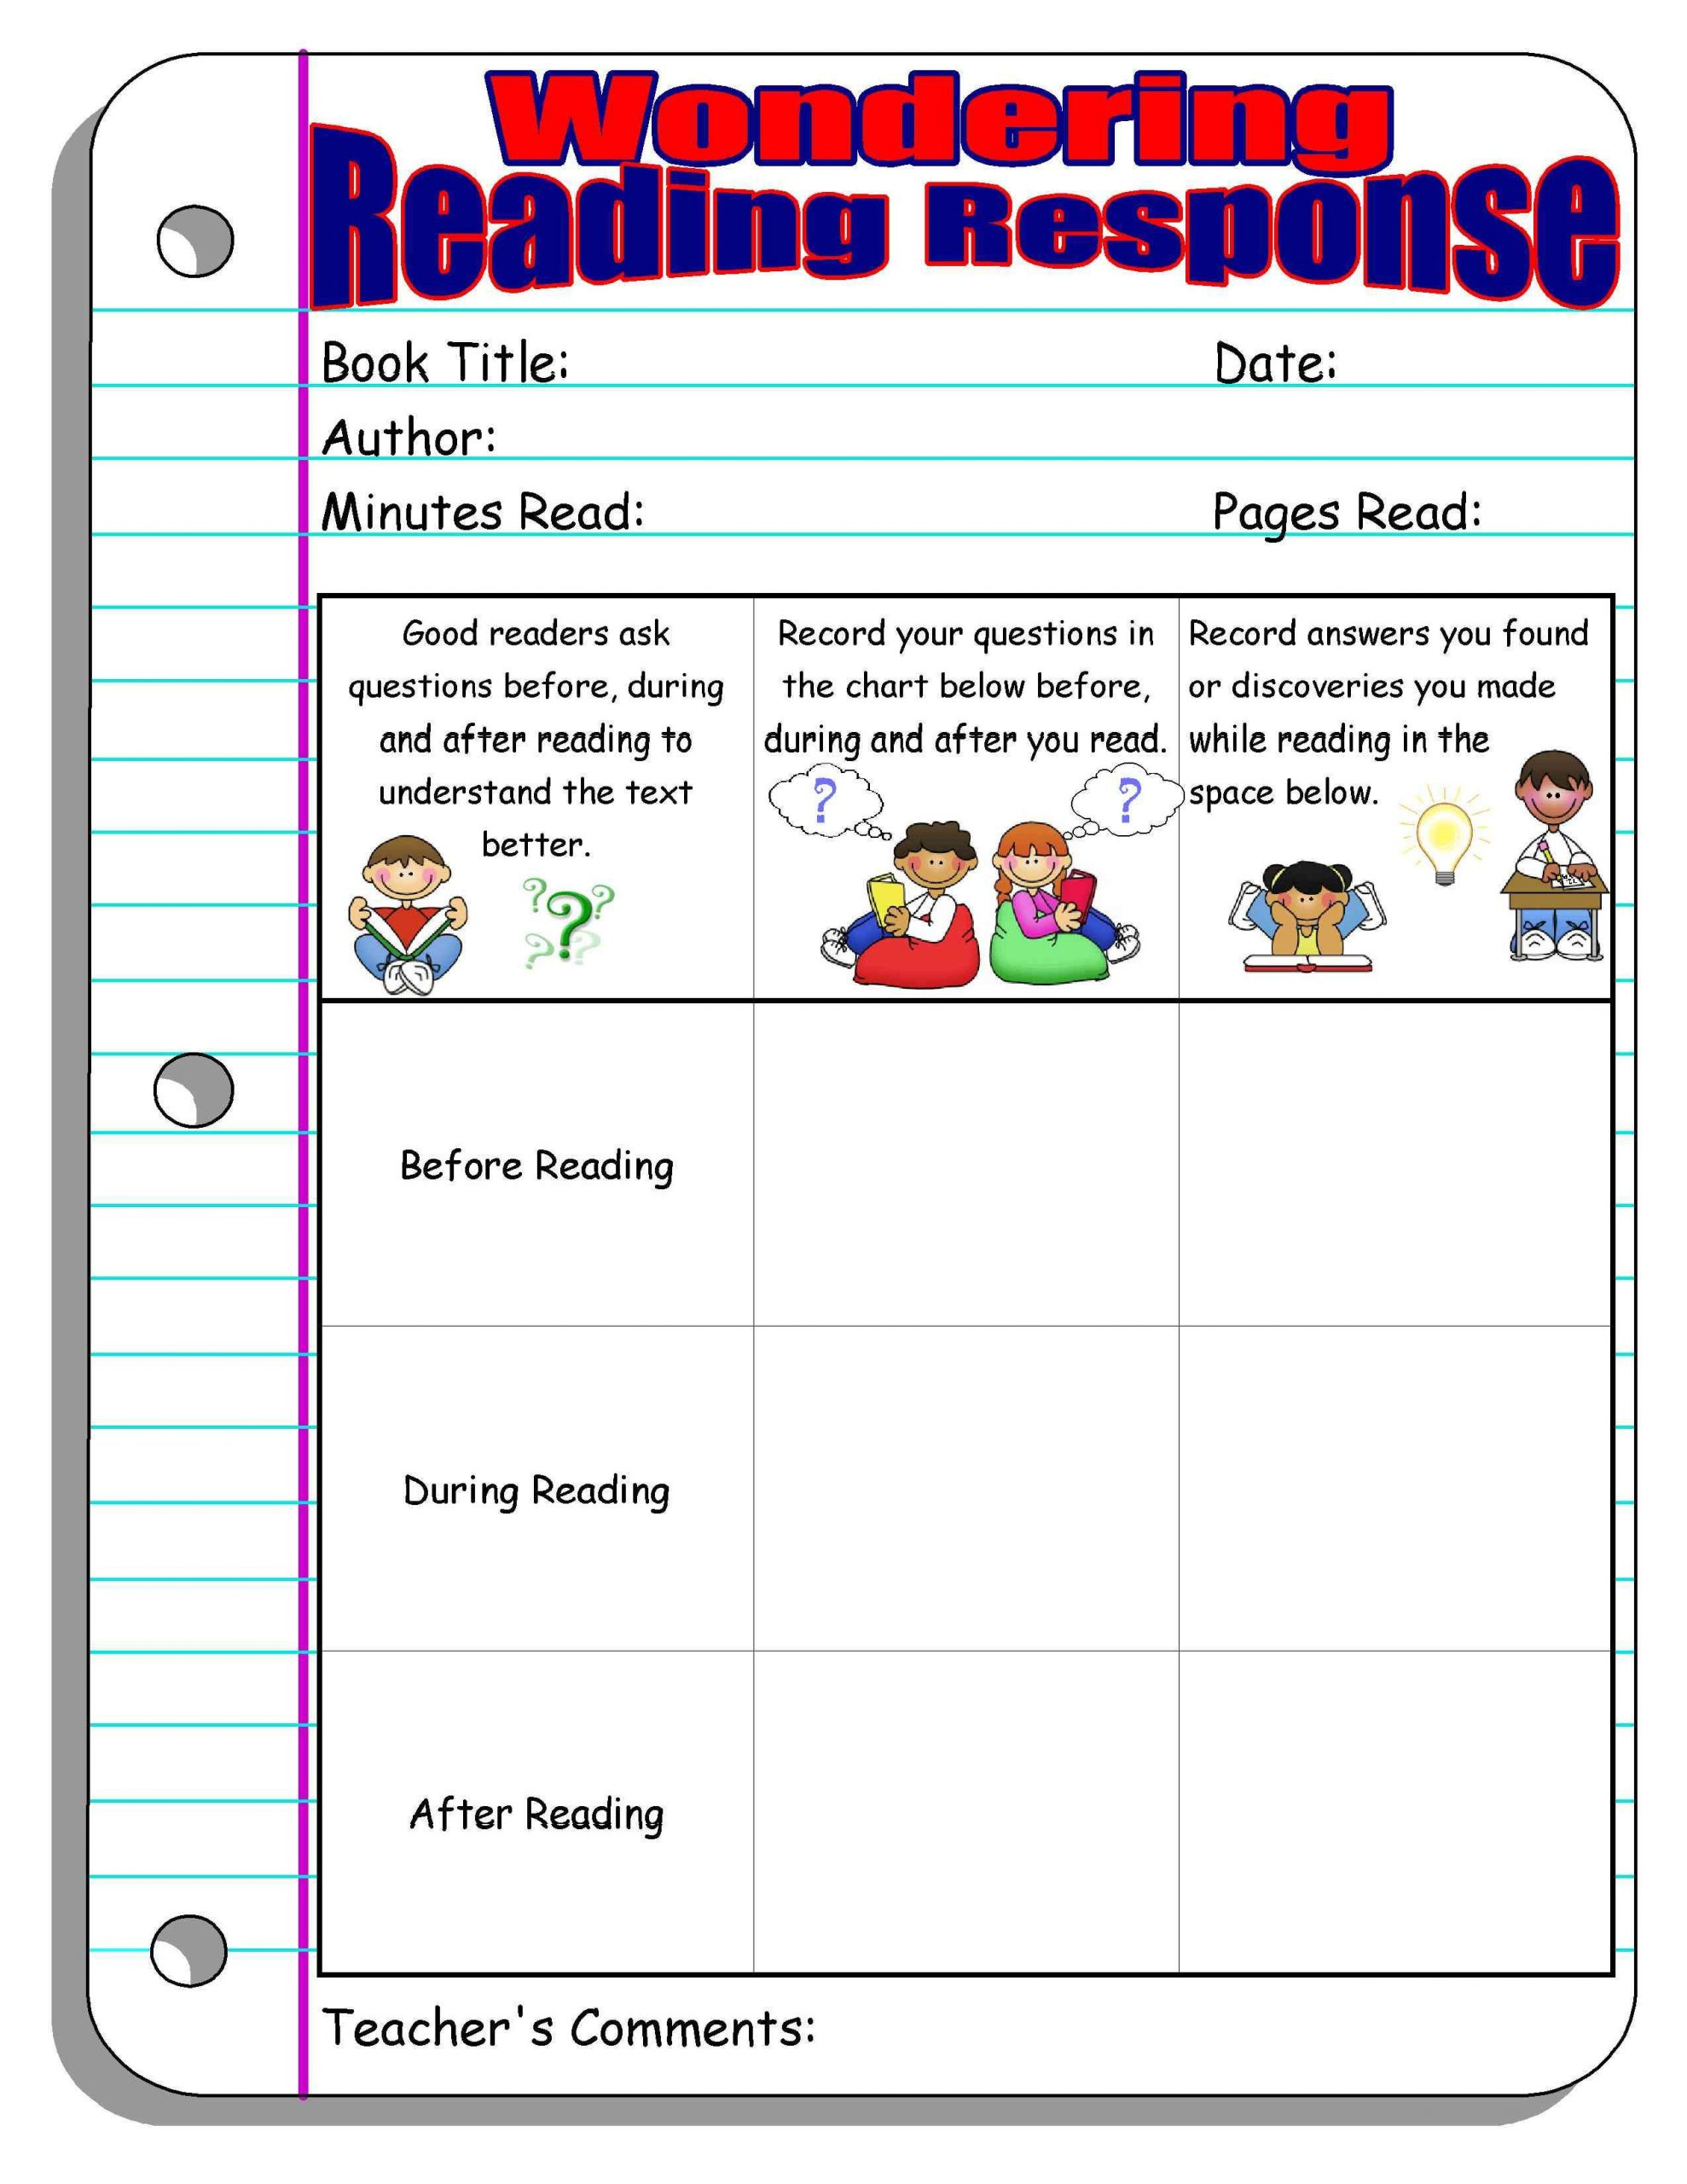 Close Reading Activities Worksheets Reading Response forms and Graphic organizers